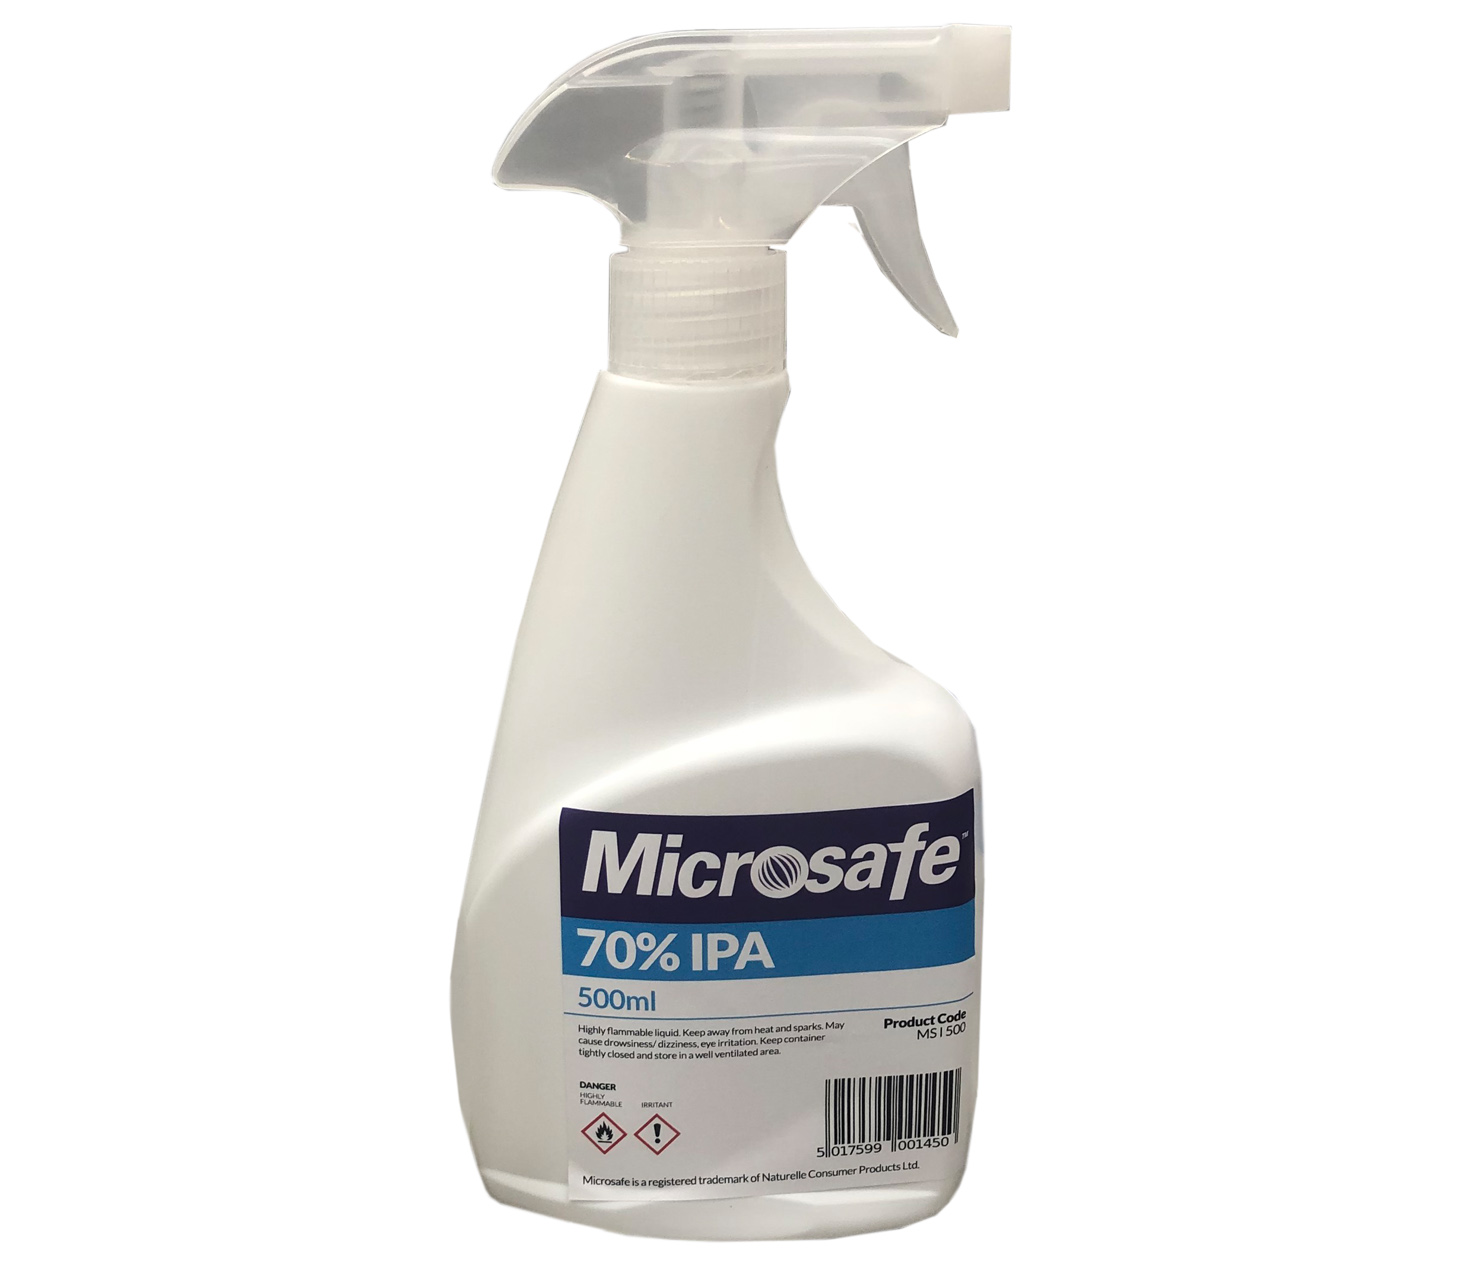 637281696690735438_microsafe_spray_500ml.jpg